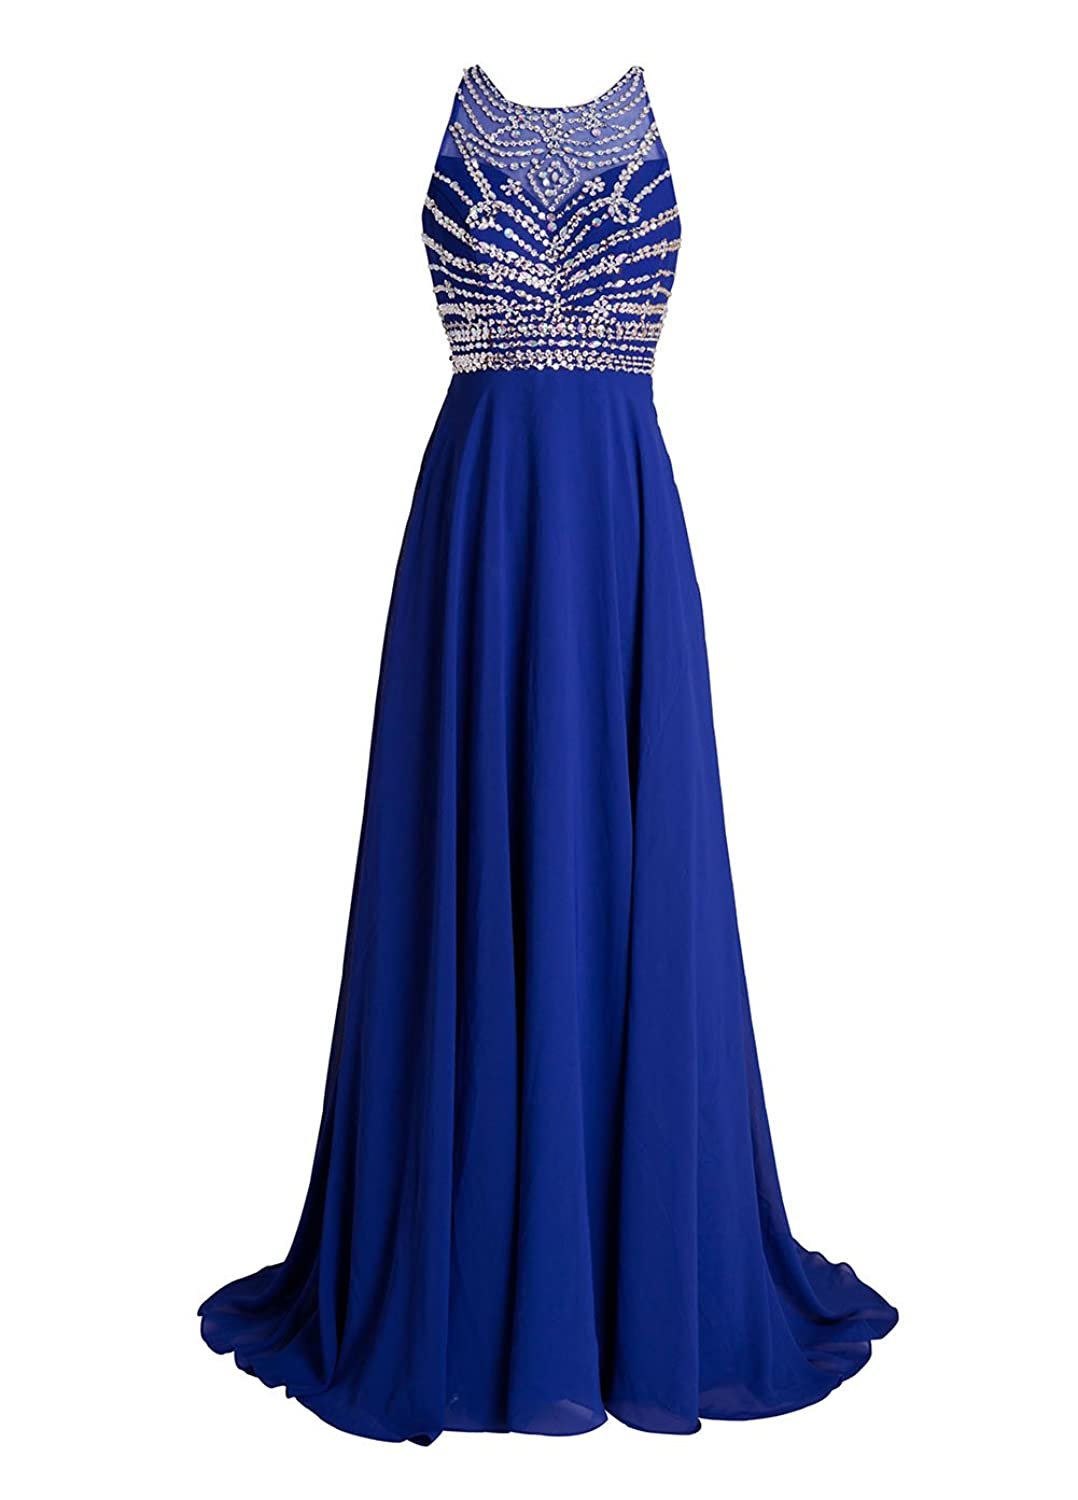 AngelDragon Two Shoulder Rhinestones Beading Chiffon Long Prom Dresses Bridesmaid Gowns